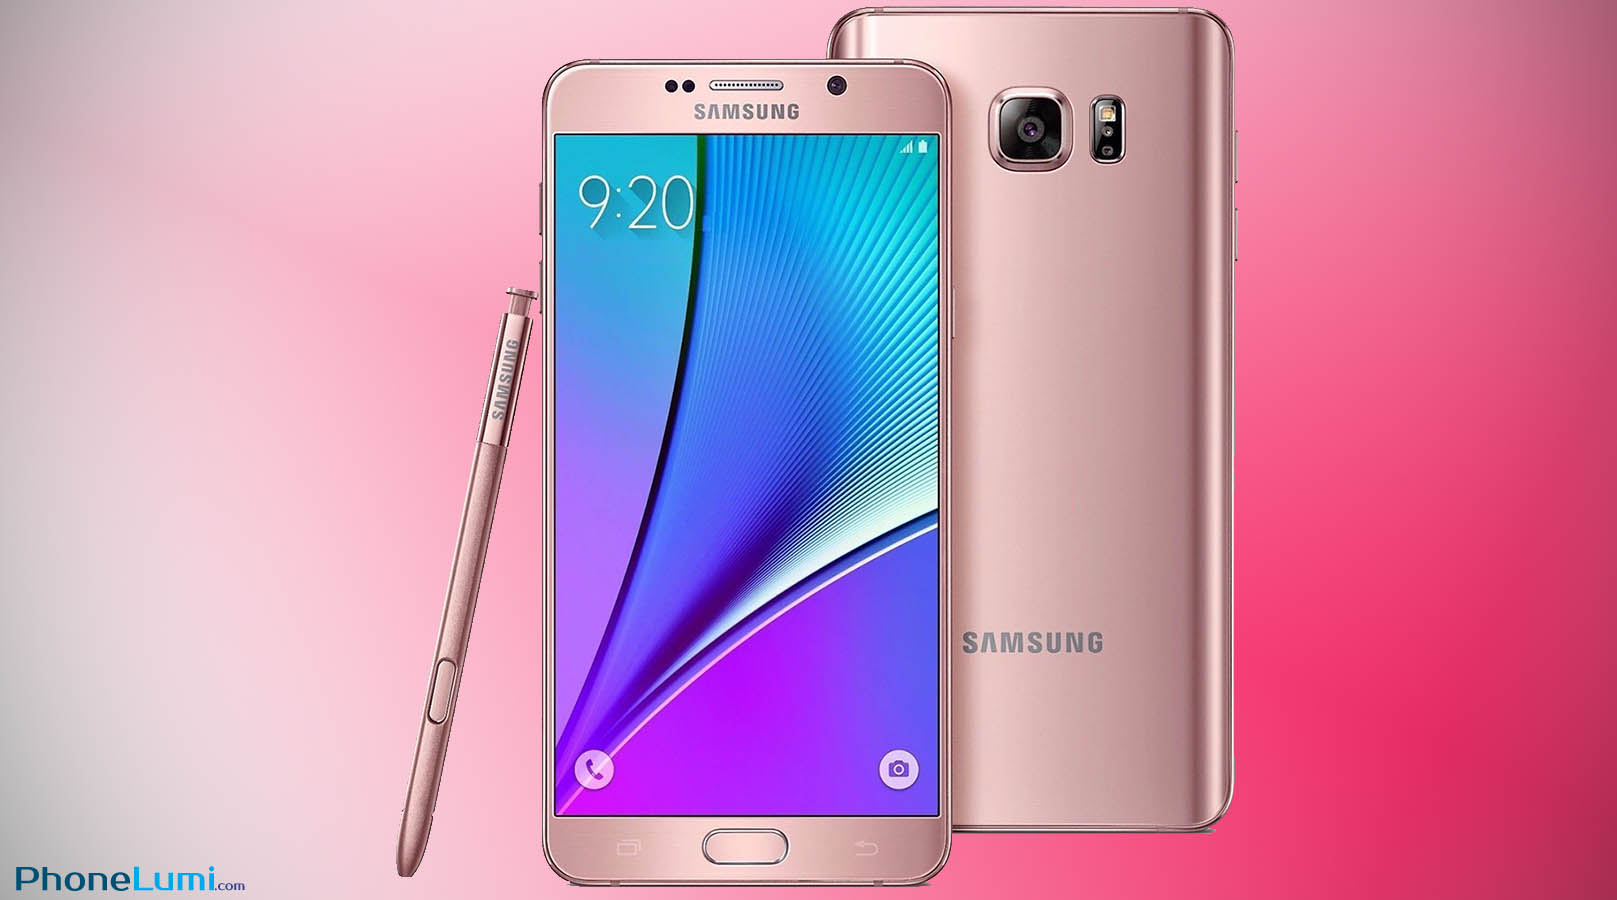 Rom gốc Android 7.0 Samsung Galaxy Note 5 SM-N920C